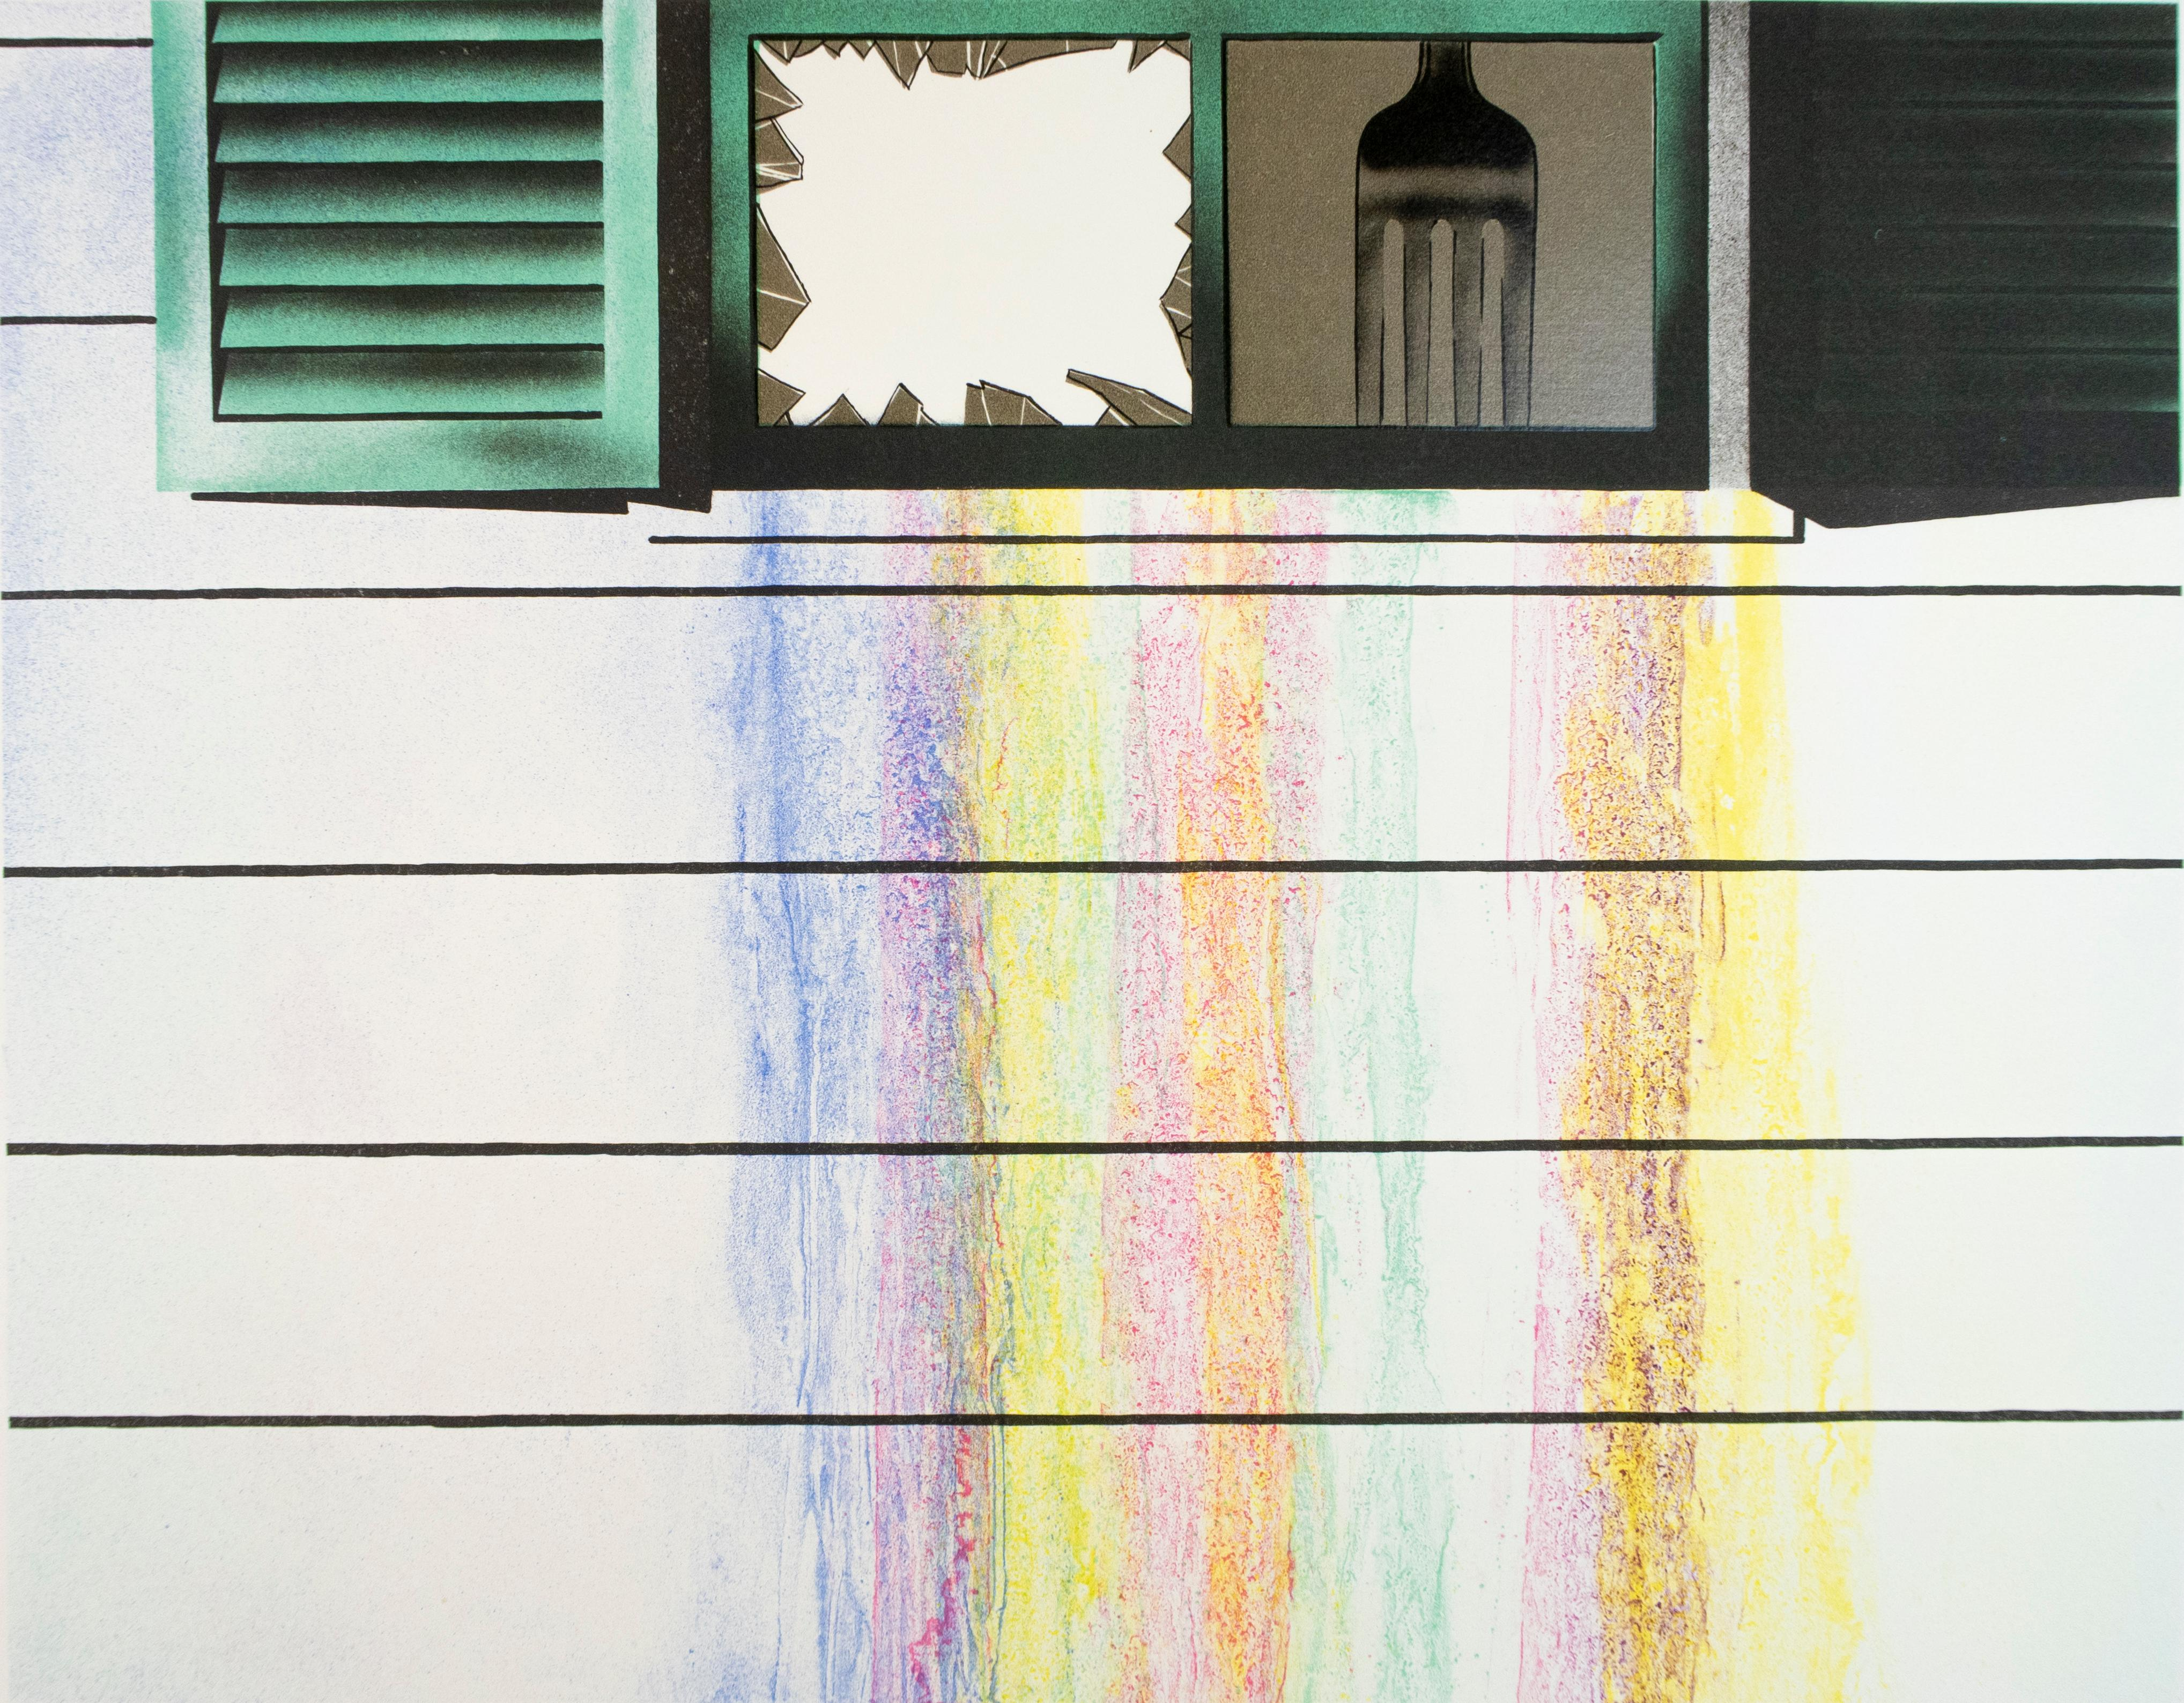 Rainbow: colorful Rosenquist pop art with gold, turquoise, purple, pink, blue